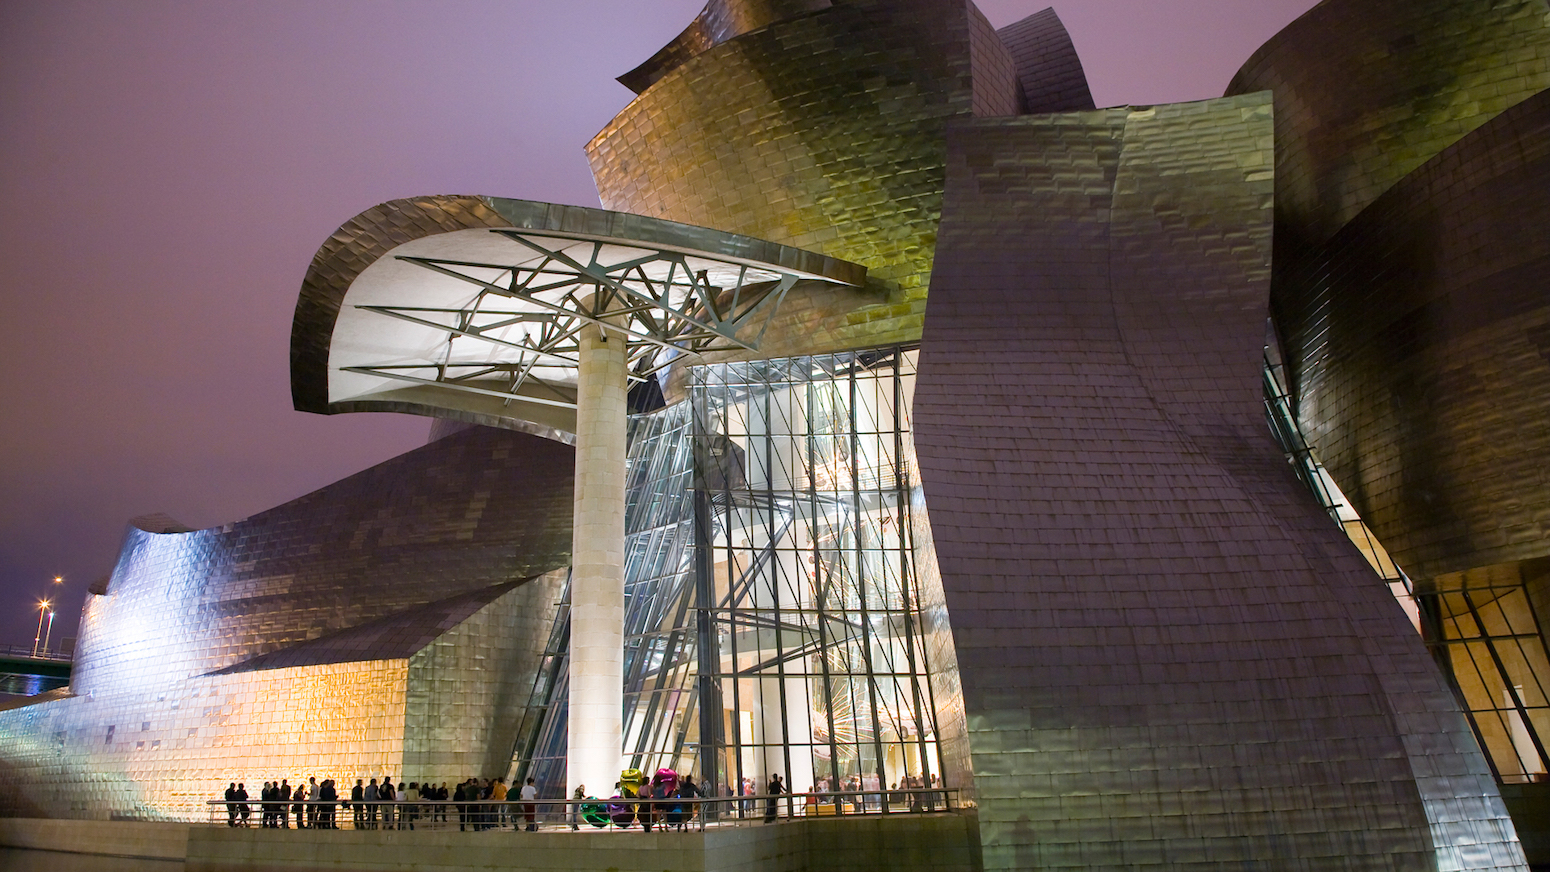 Exterior view of the Guggenheim, Bilbao, by Frank Gehry. The museum opened in 1997.